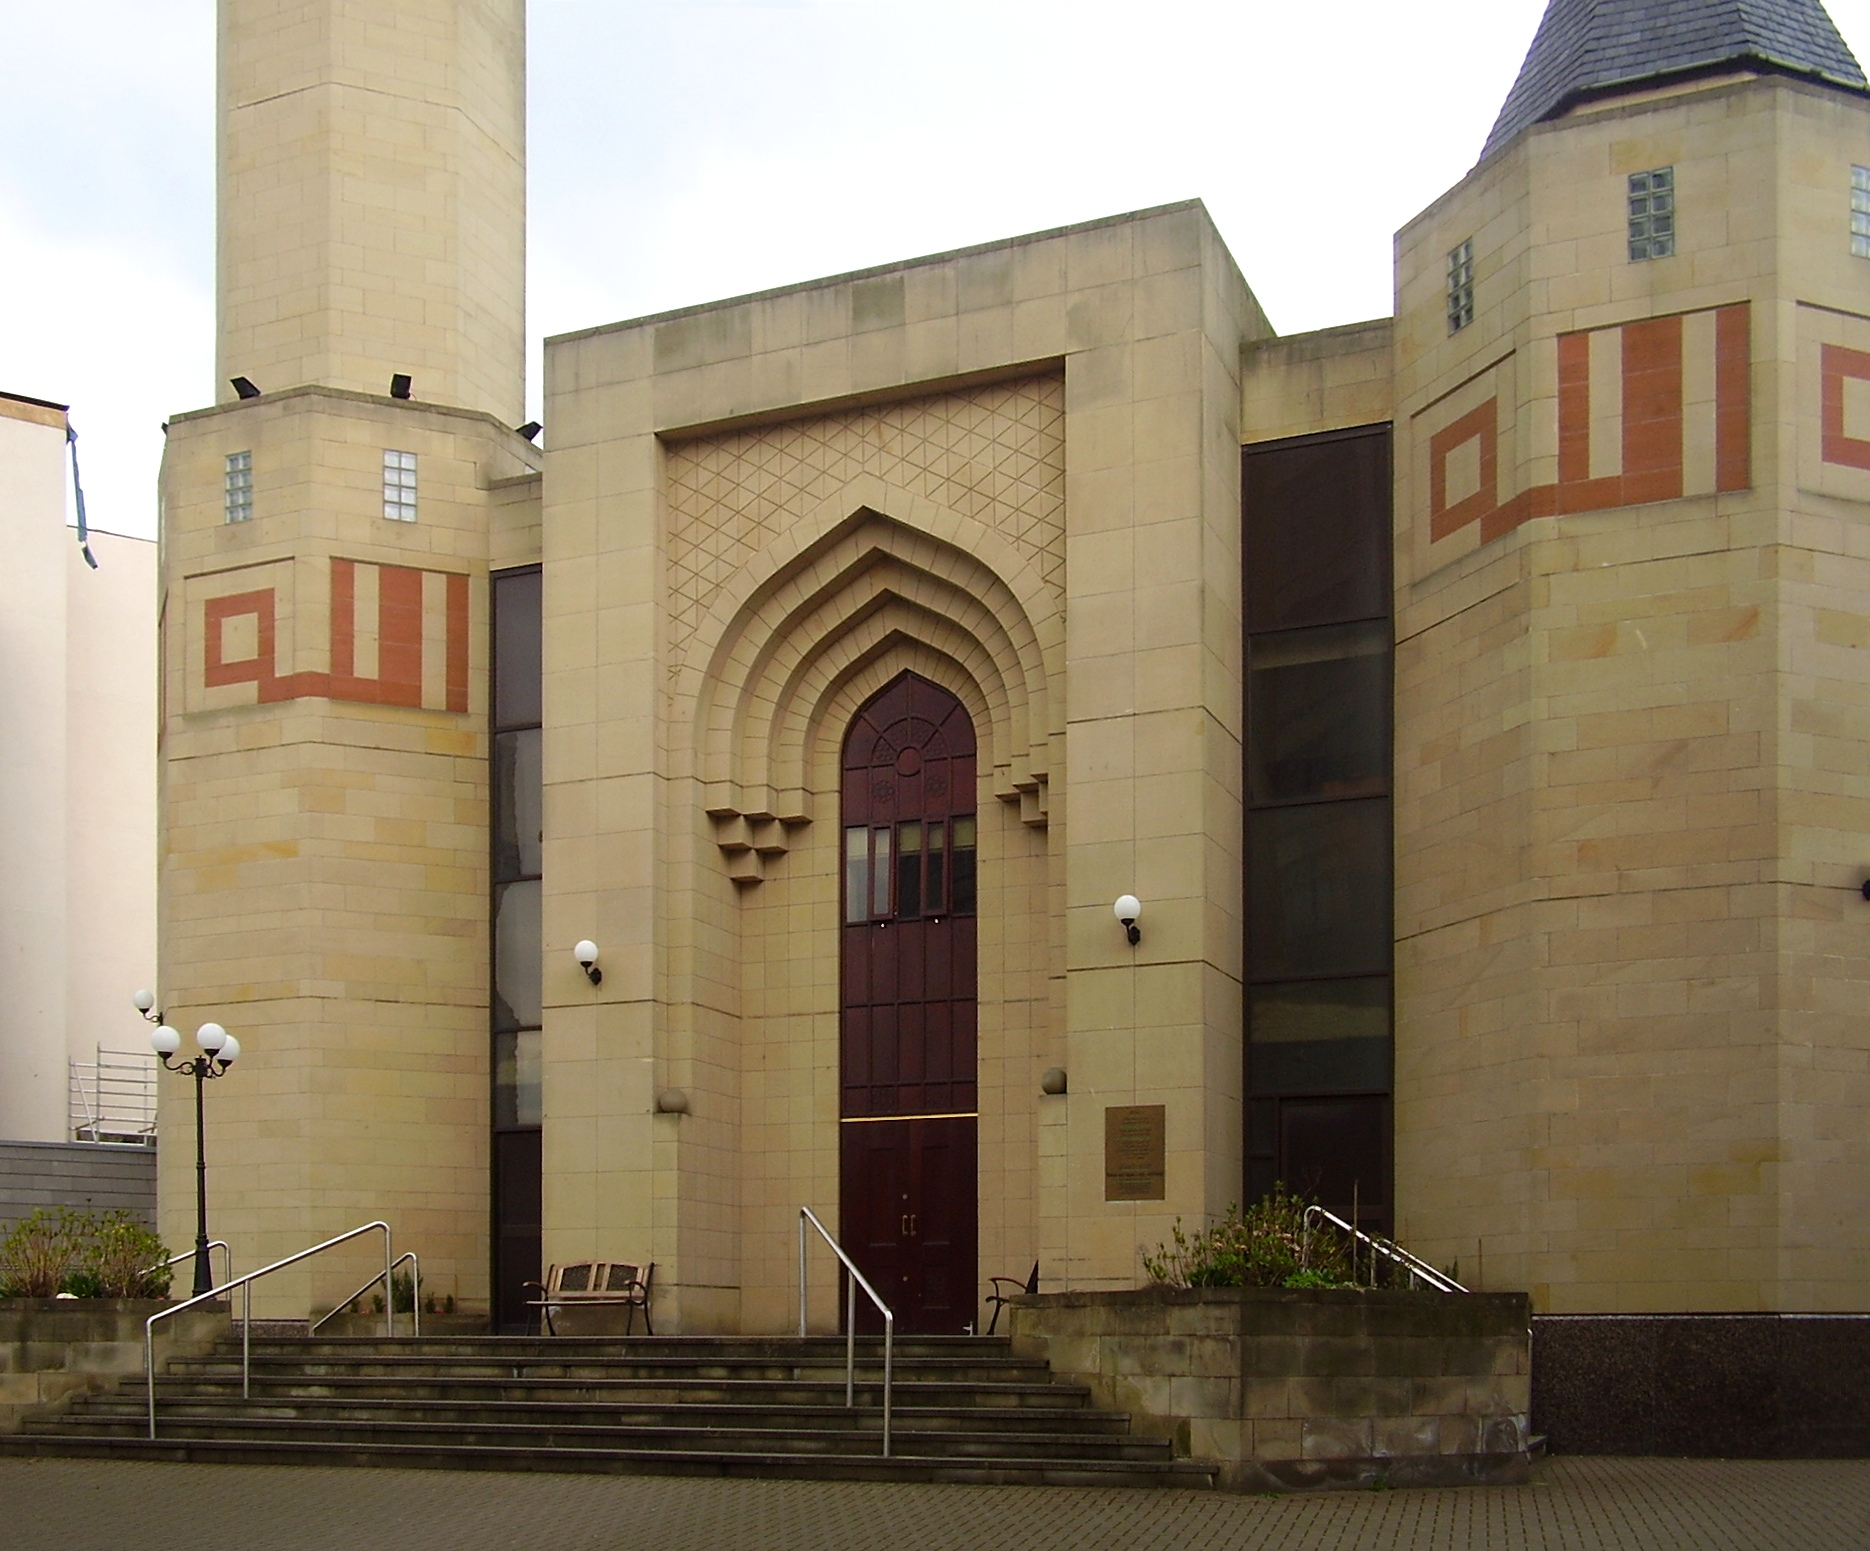 http://upload.wikimedia.org/wikipedia/commons/f/f7/Edinburgh_central_mosque_edit.jpg